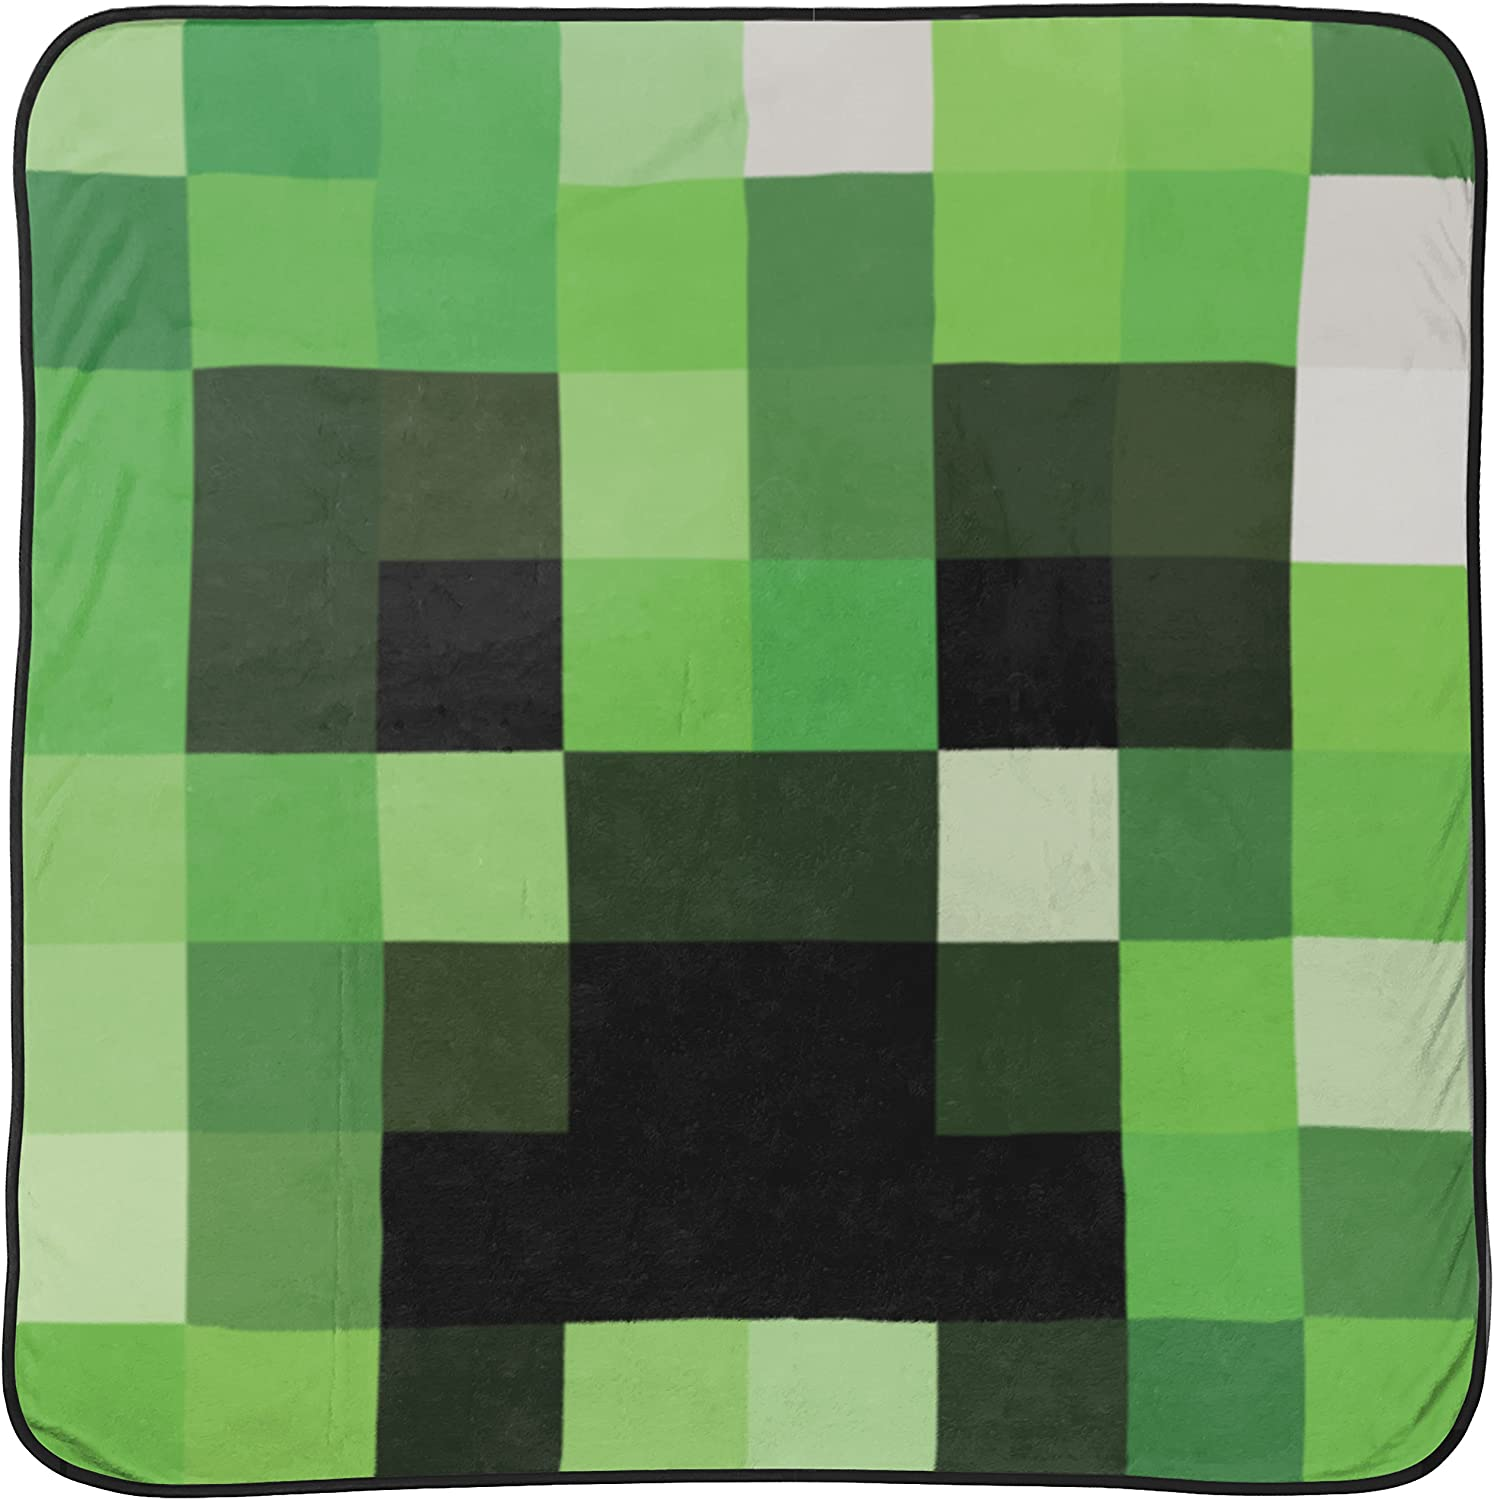 Jay Franco Mojang Minecraft Creeper Plush Throw Blanket